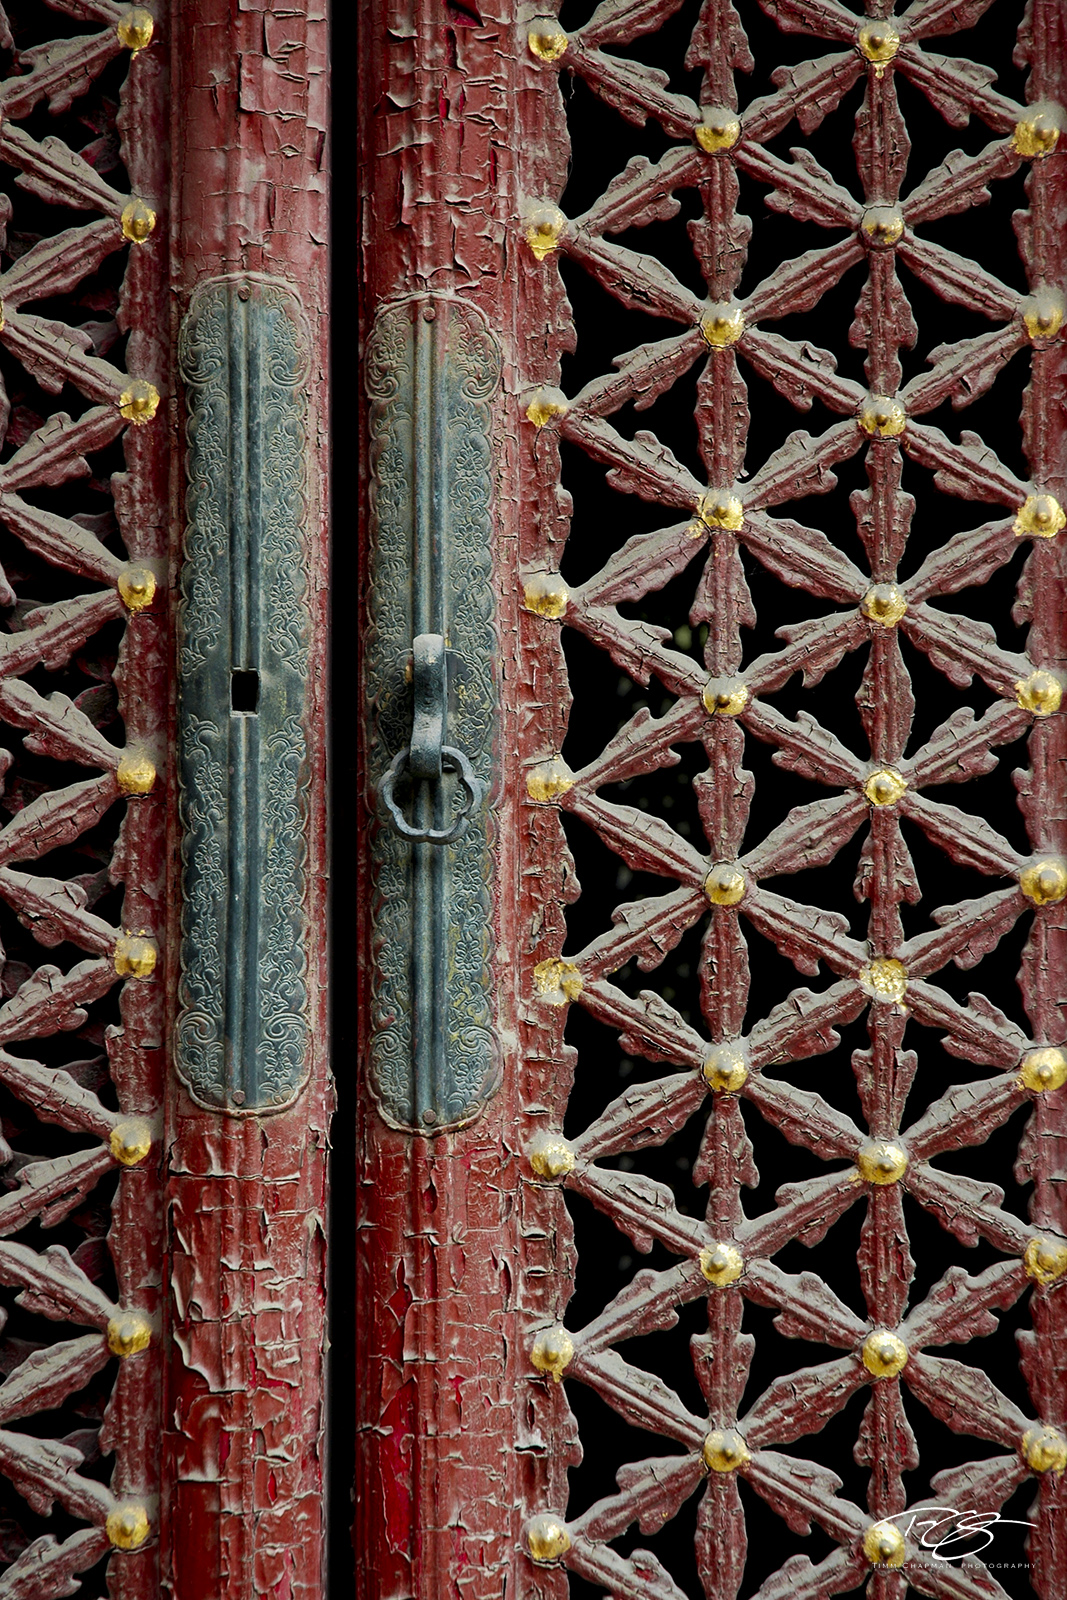 forbidden city, ornate carving, ornate doors, ornate, door, doors, doorway, dragon engraving, asian architecture, red, gold, colourful, beijing, peking, ancient doors, photo